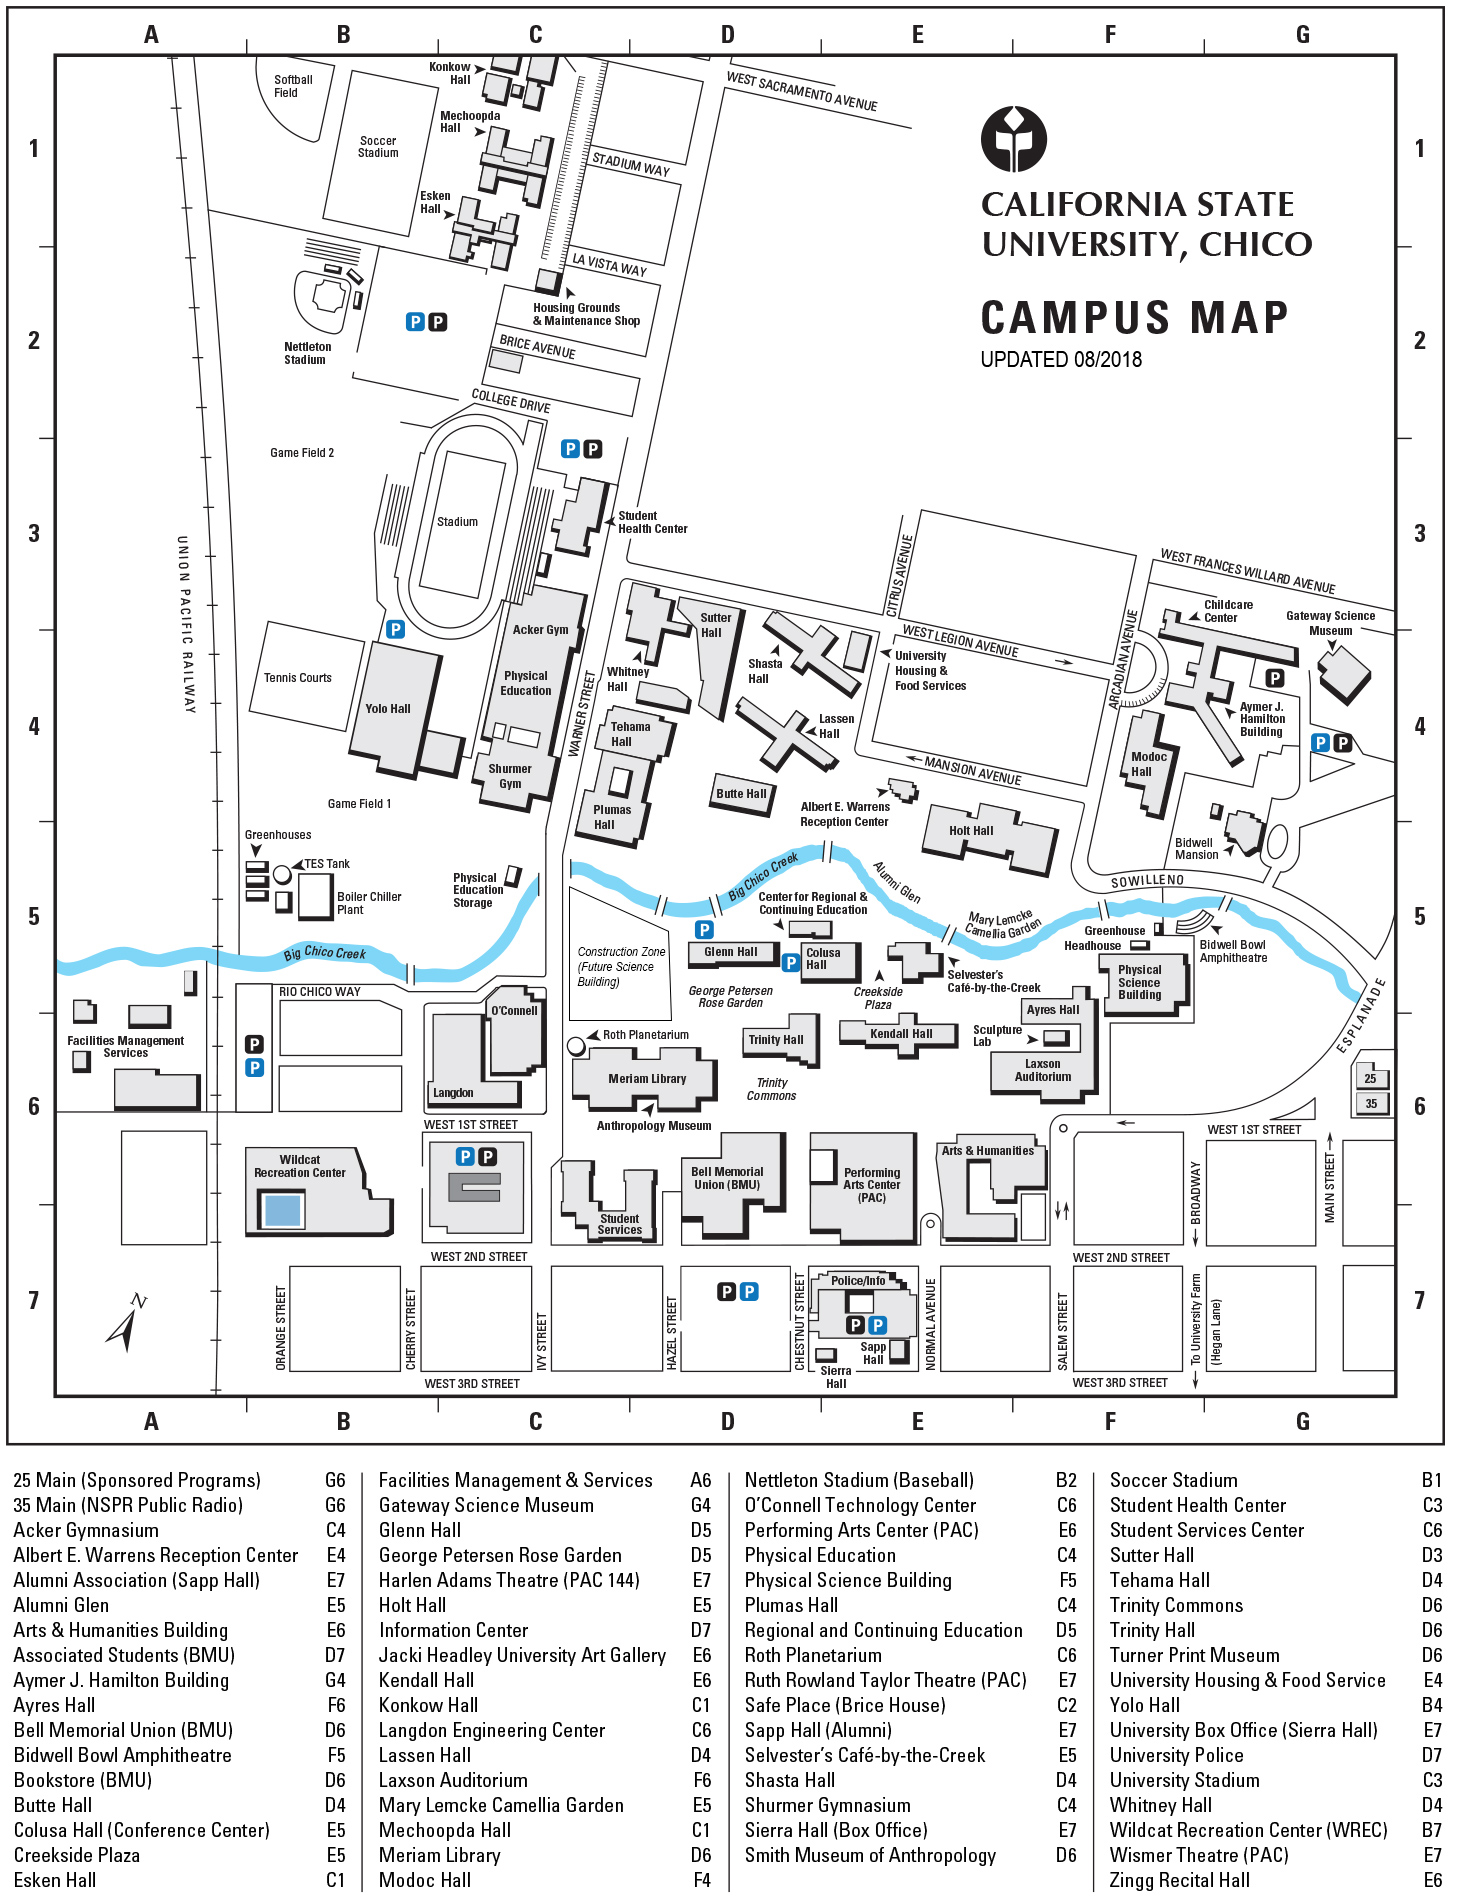 Directions - California State University, Chico - CSU, Chico on long beach csulb campus map, texas a&m-kingsville campus map, western state campus map, new haven campus map, tea towels california map, cal state fullerton housing map, northwestern state university campus map, california institute of technology campus map, lenoir-rhyne campus map, cal state los angeles map, cal state channel islands campus map, cal state east bay campus map, cal state dominguez hills location, cal state stanislaus campus map, va long beach campus map, california state university campus map, grambling state university on map, long beach university campus map, cal state san diego campus, csula map,